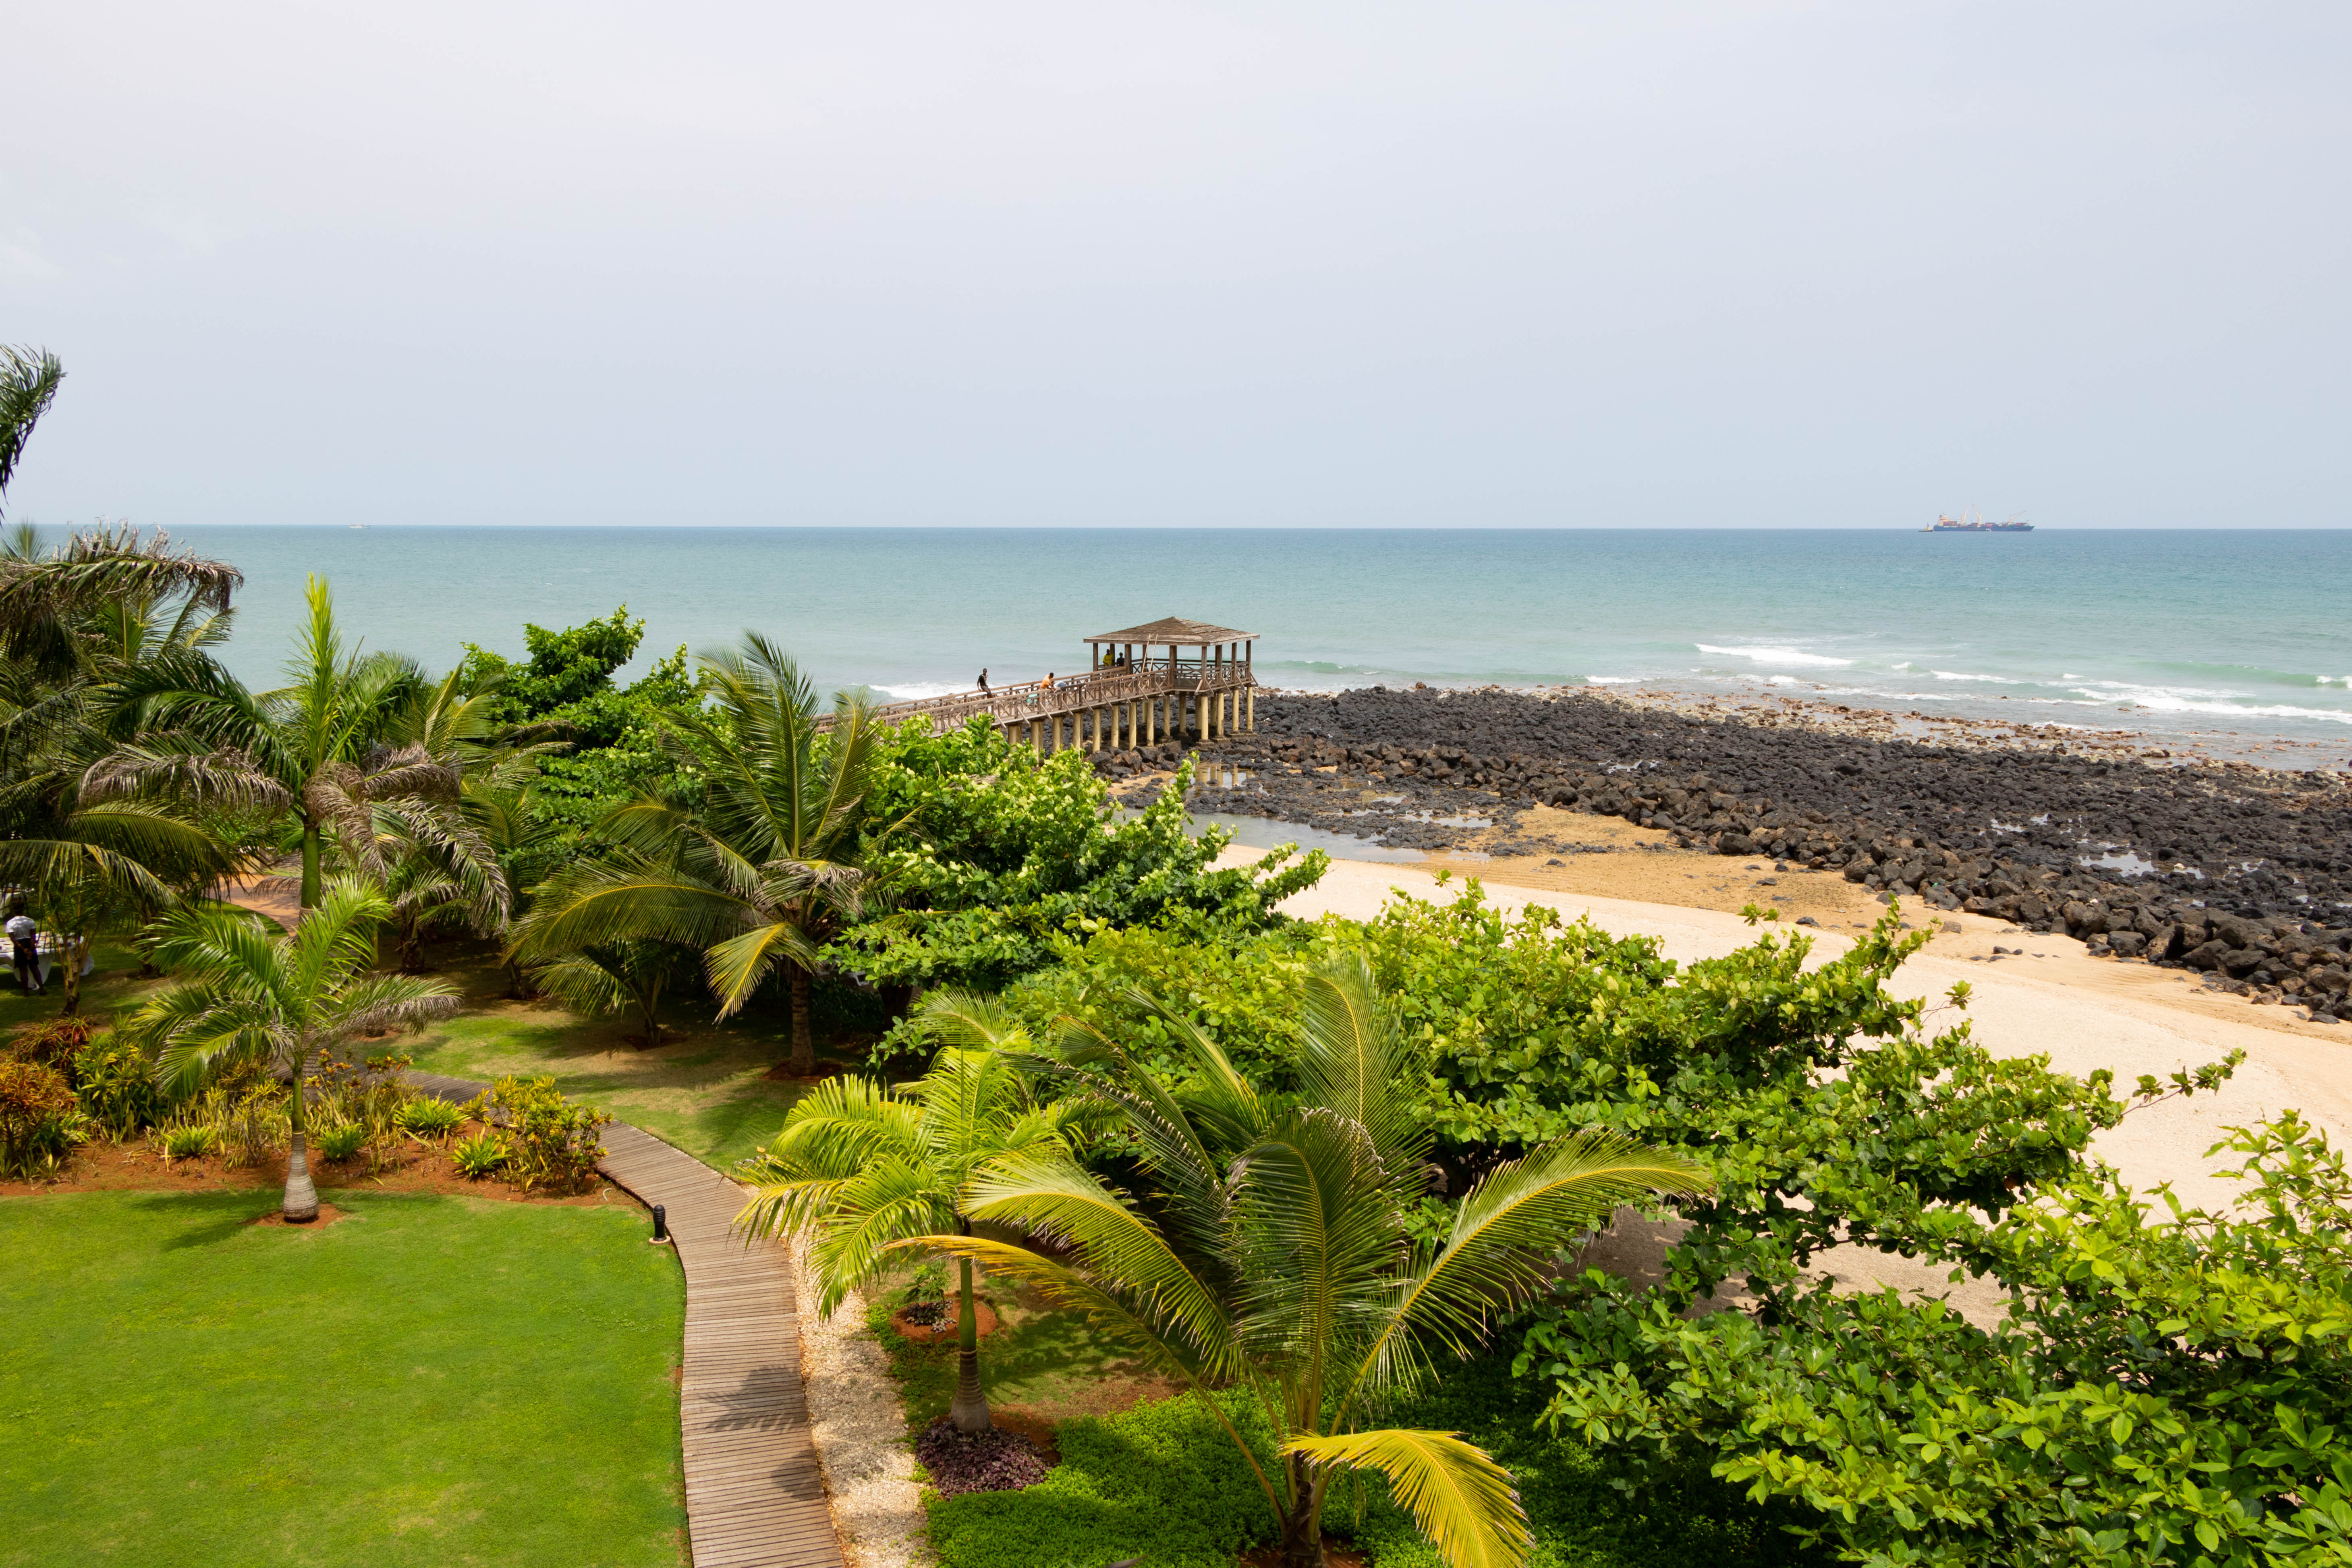 Where to stay in Sao Tome Island